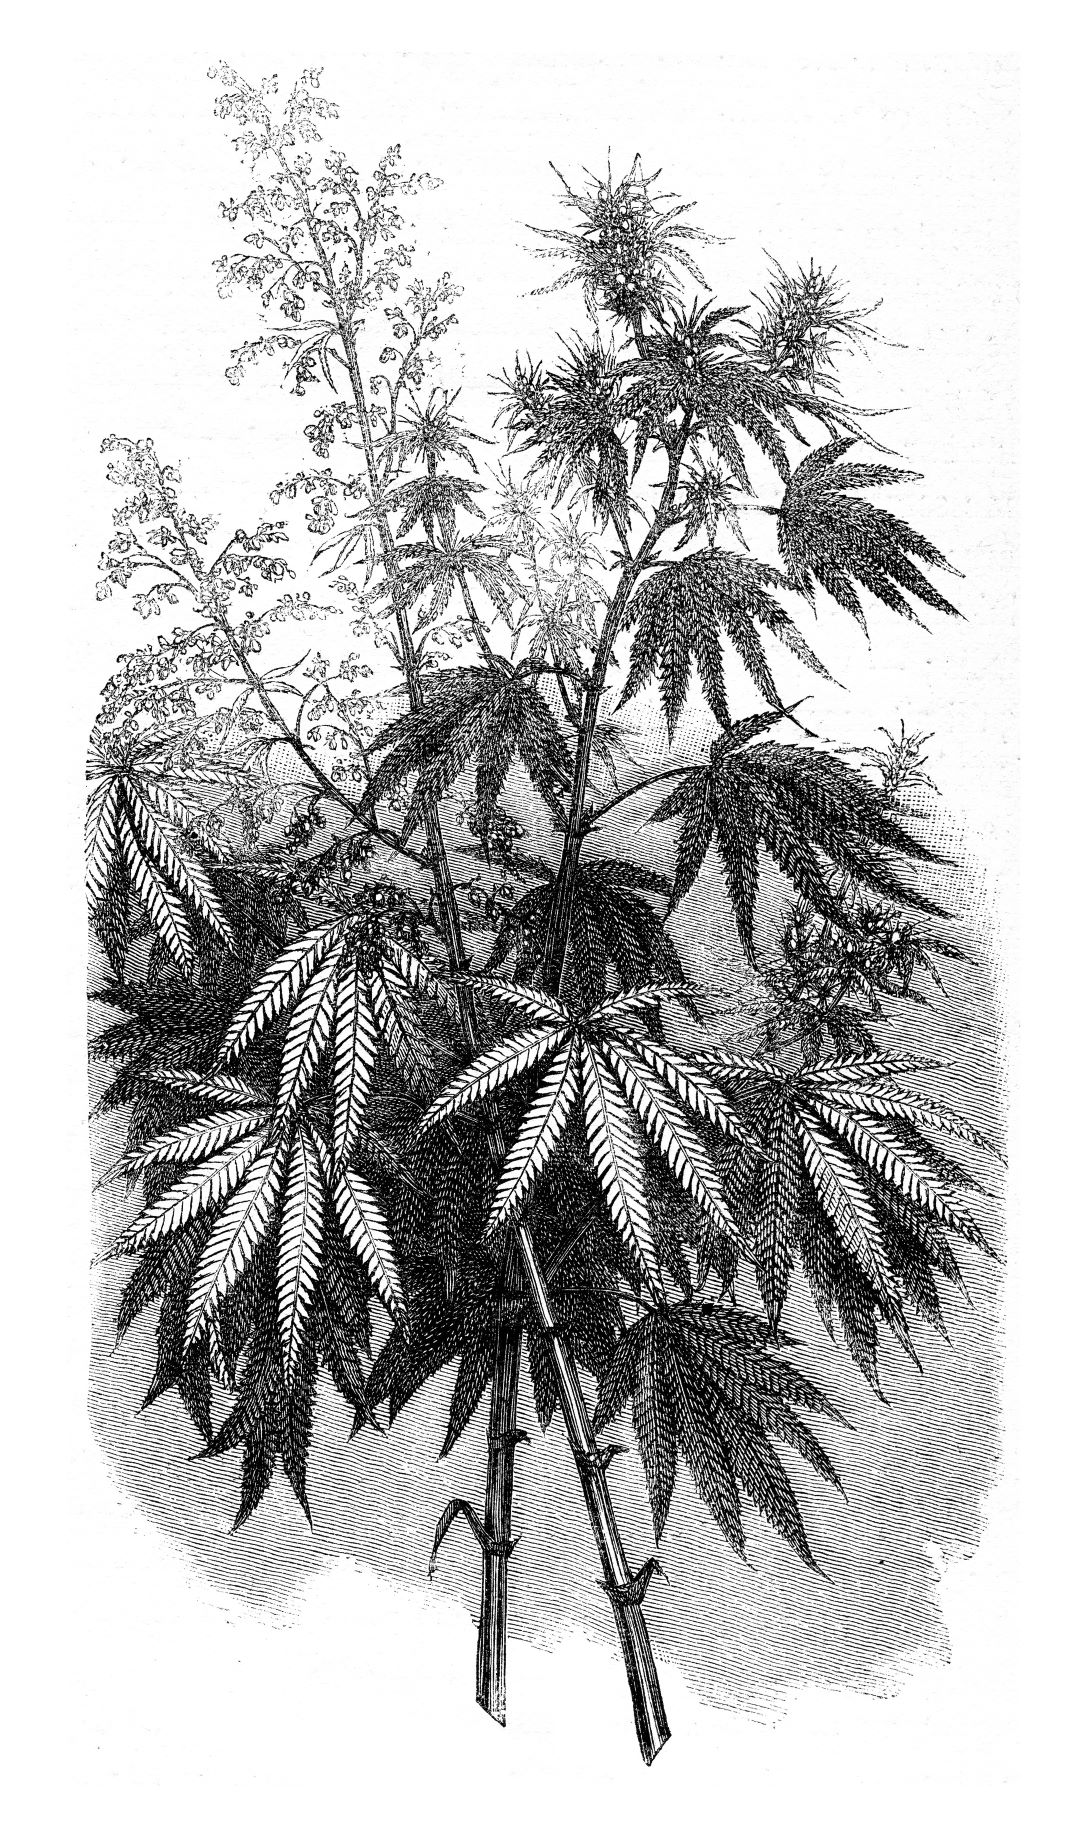 Black and white illustration of a cannabis plant